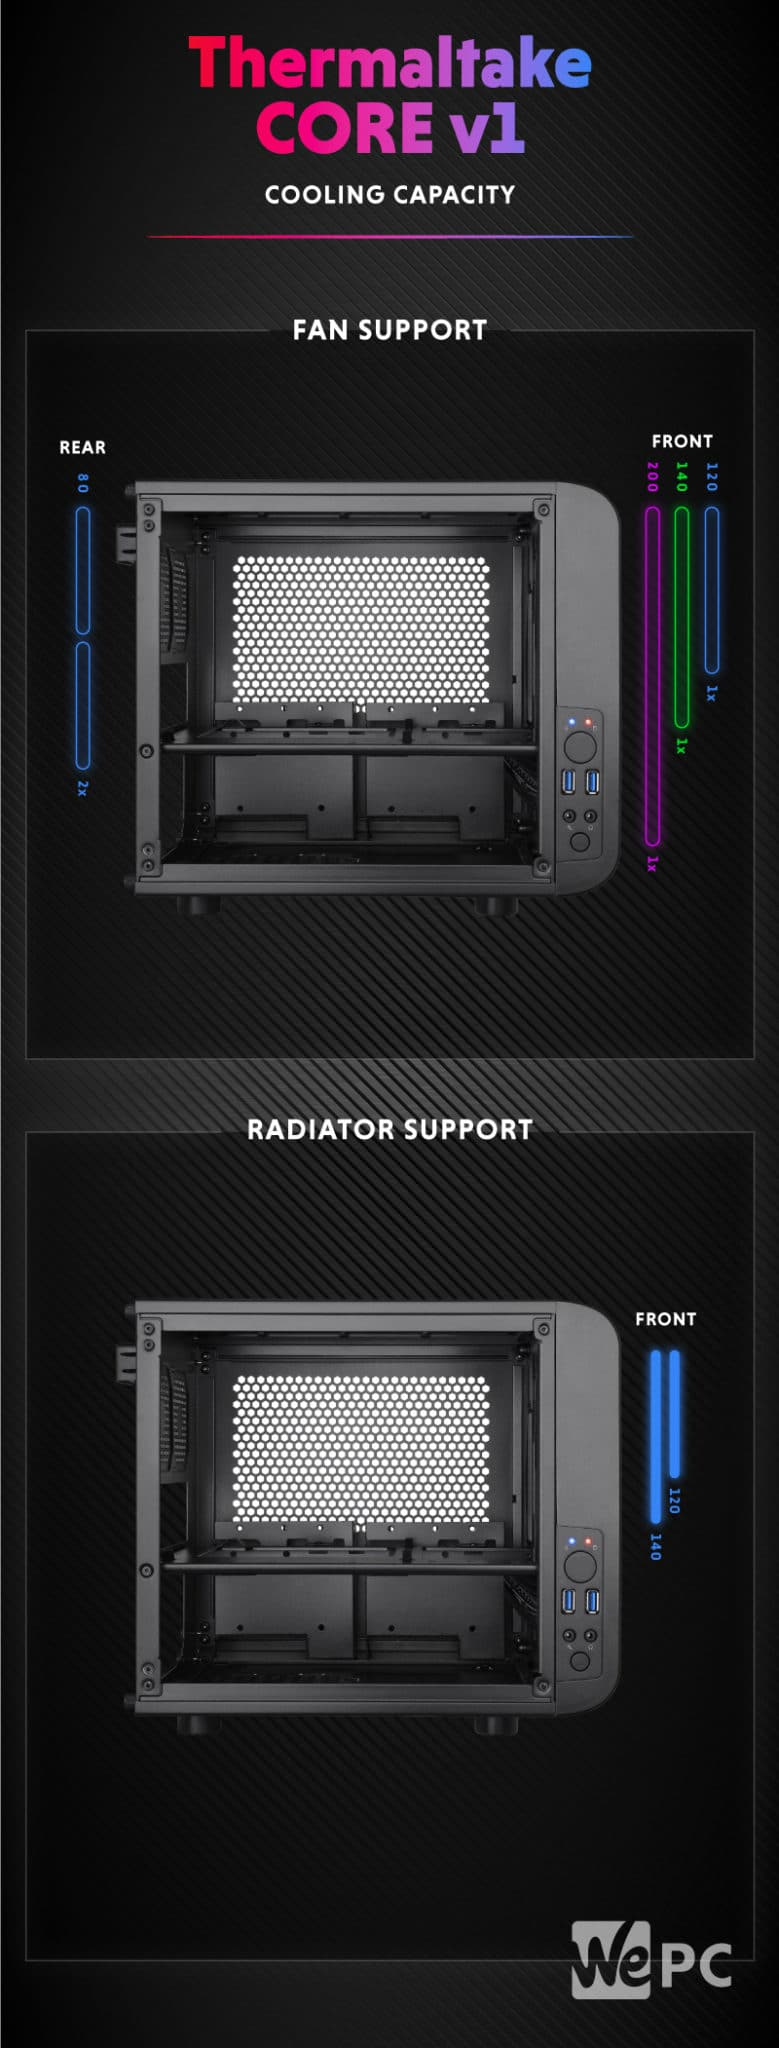 Thermaltake CORE v1 Cooling Capacity